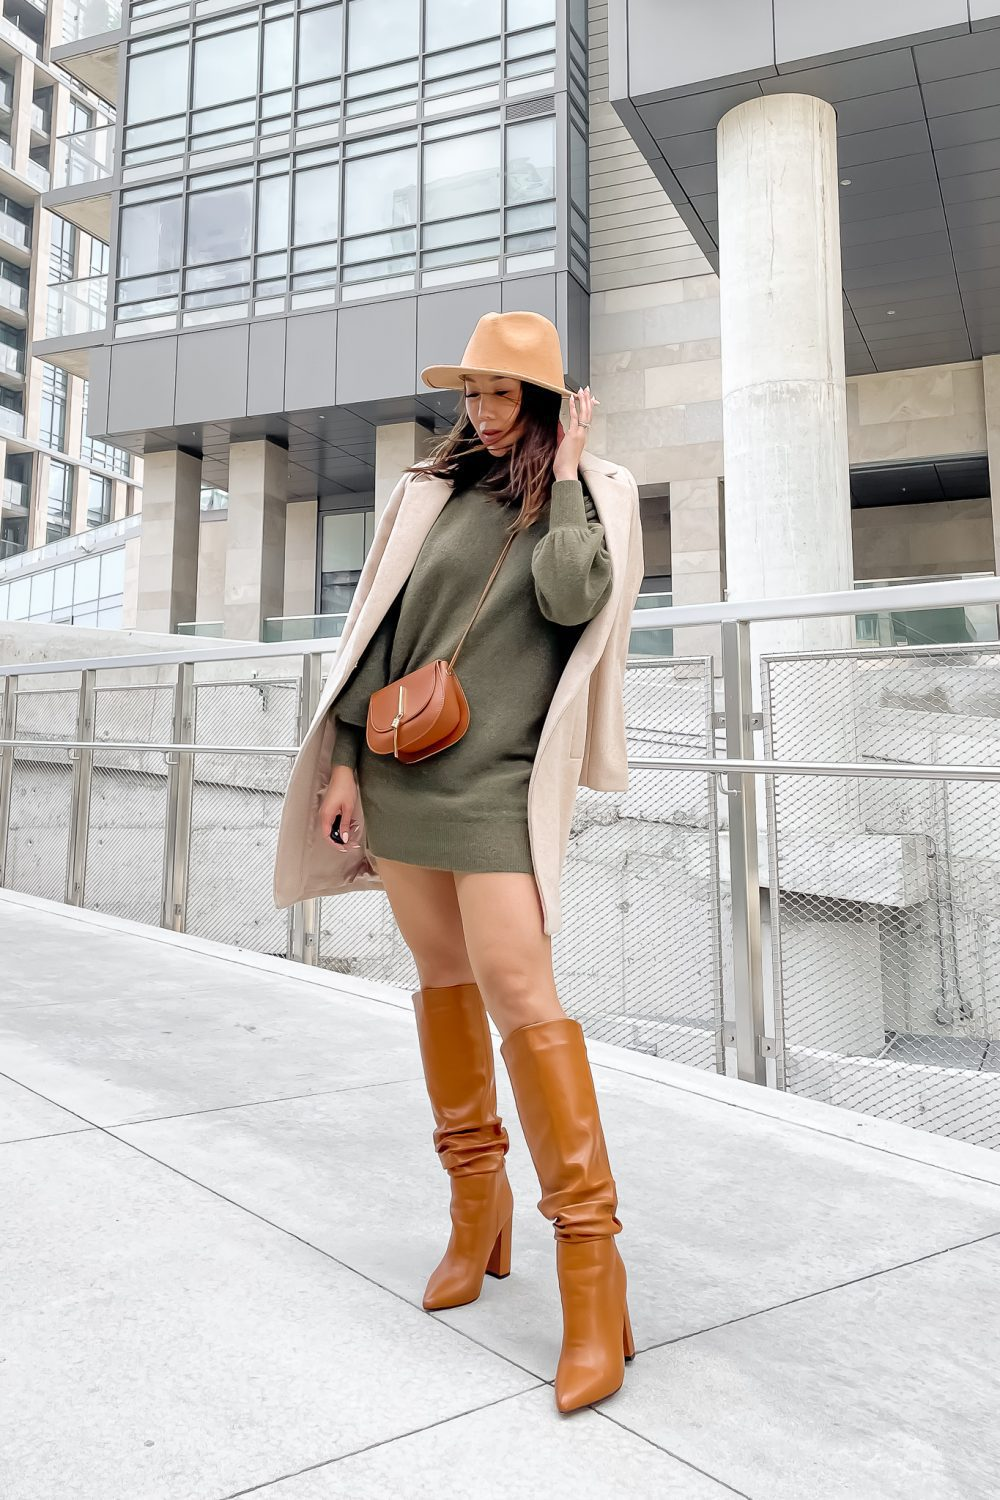 Fall outfit ideas with fall color trend olive green. Pair it with brown tones for an cozy earthy fall look.